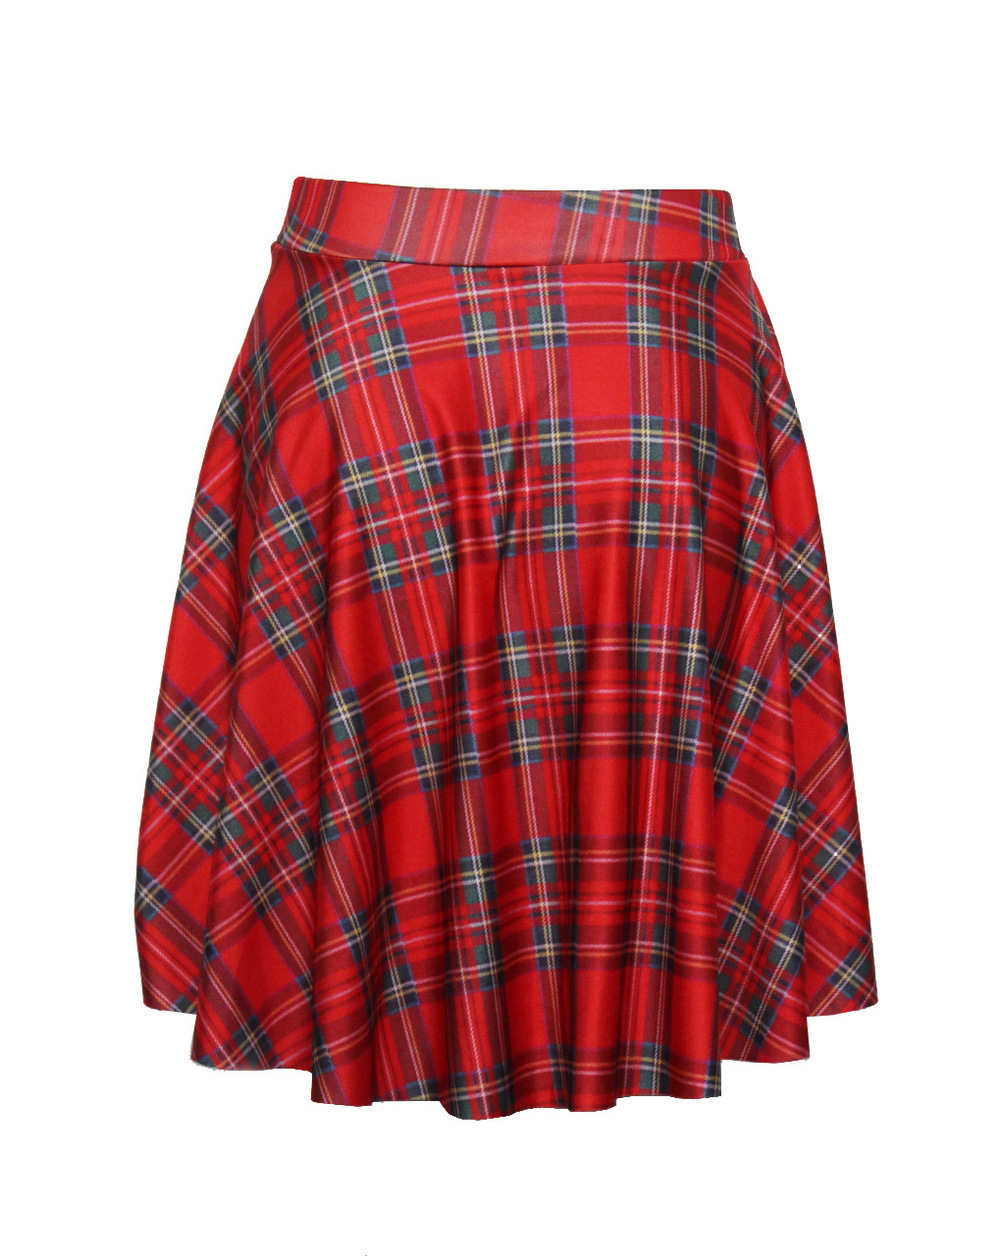 5f5d1a93f0d Get Quotations · skirts for women 2015 explosion models the latest spring  and summer fashion Slim thin red plaid